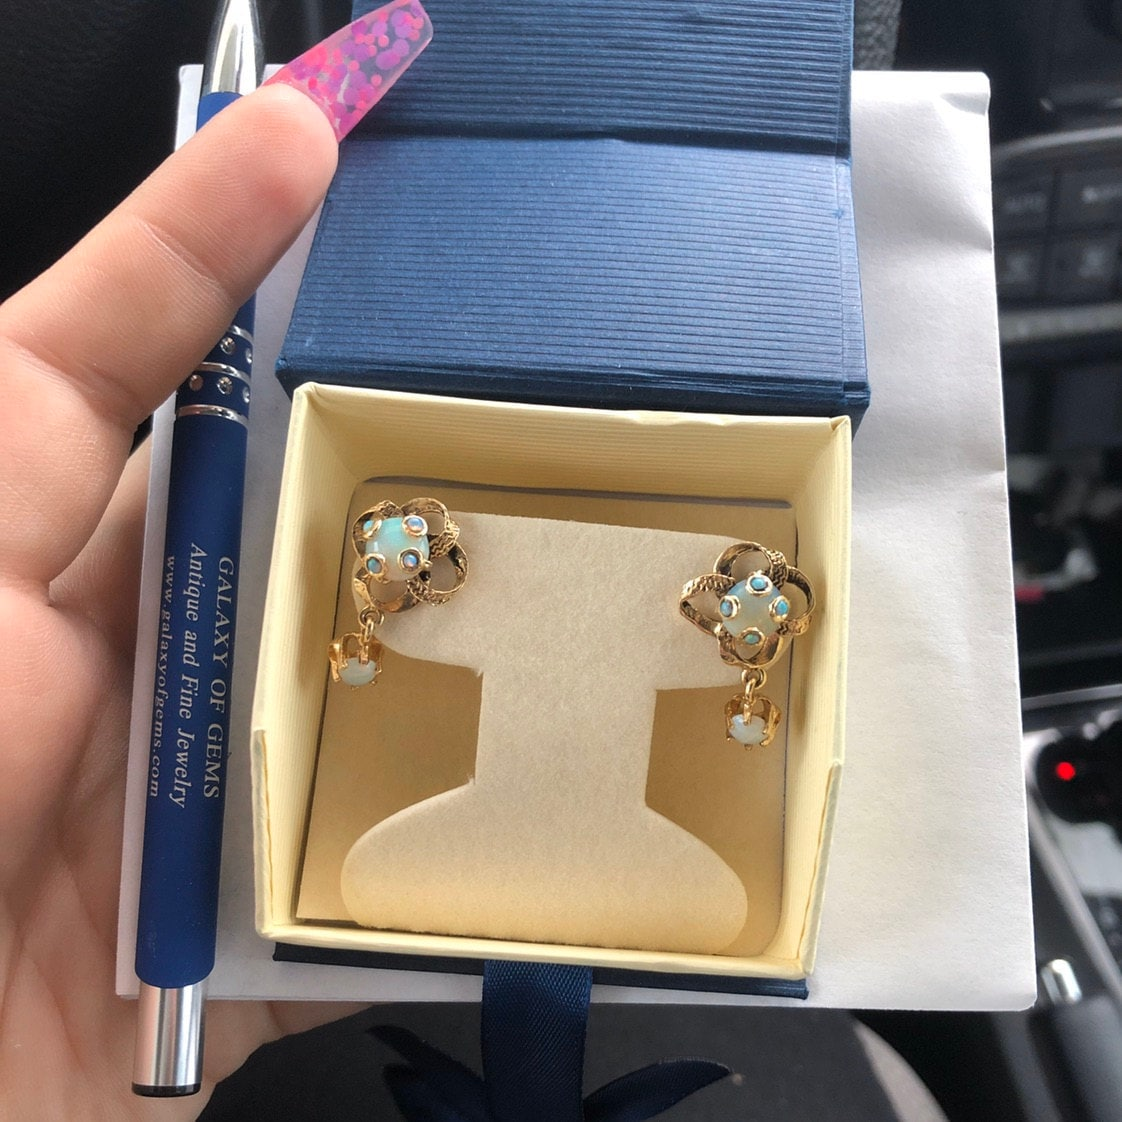 Brittany added a photo of their purchase